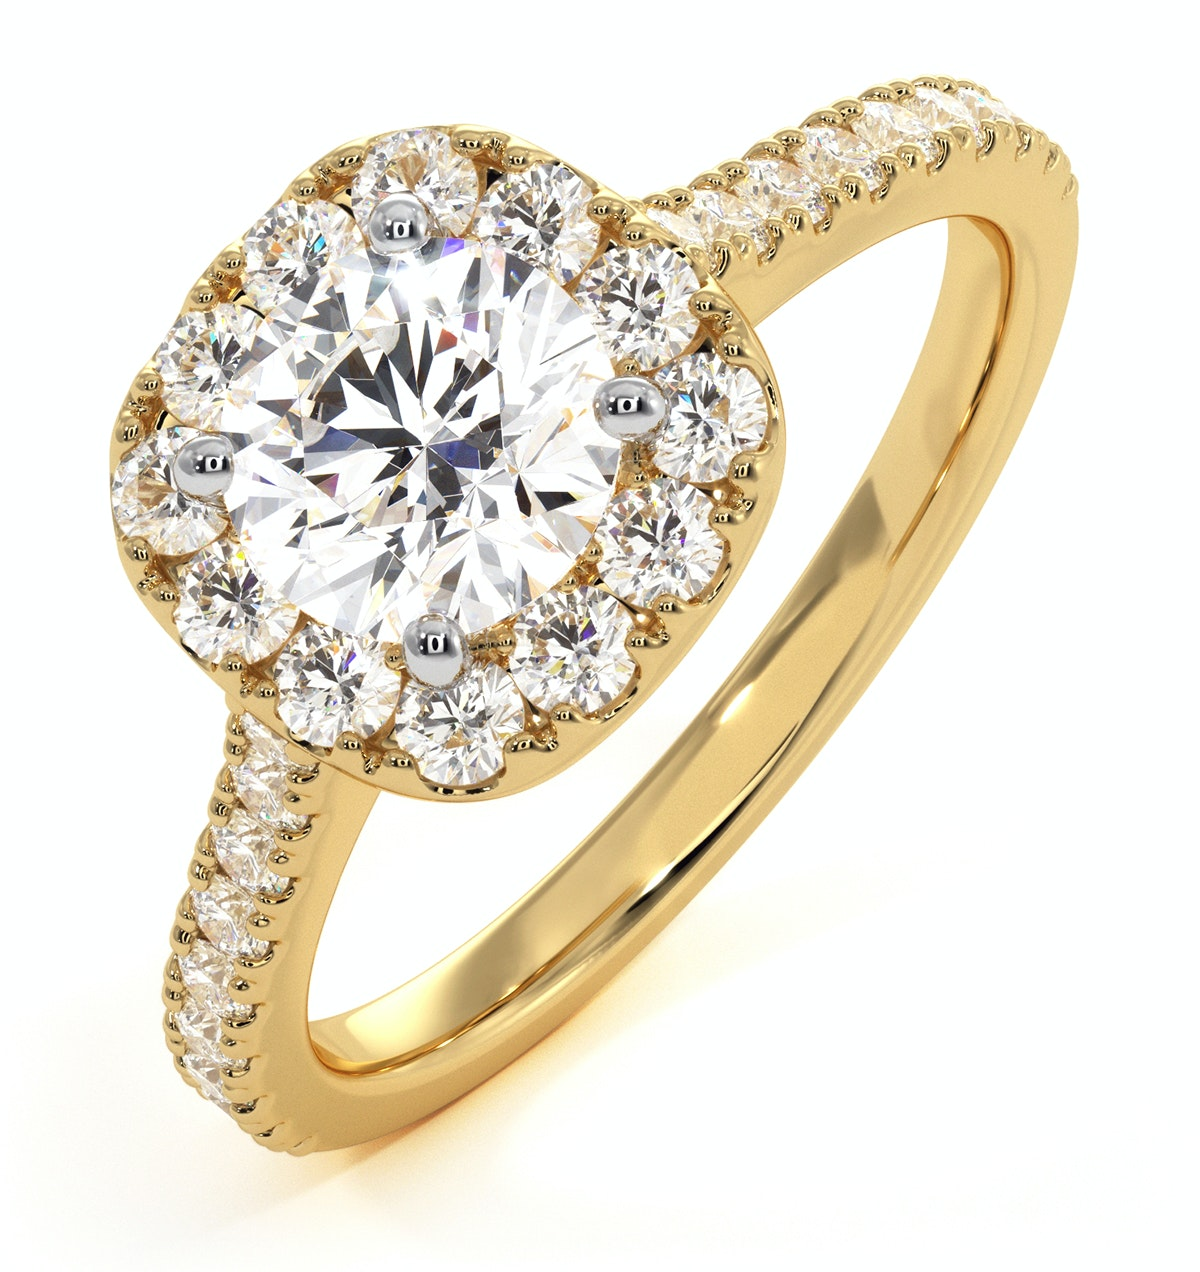 Elizabeth GIA Diamond Halo Engagement Ring in 18K Gold 1.30ct G/SI2